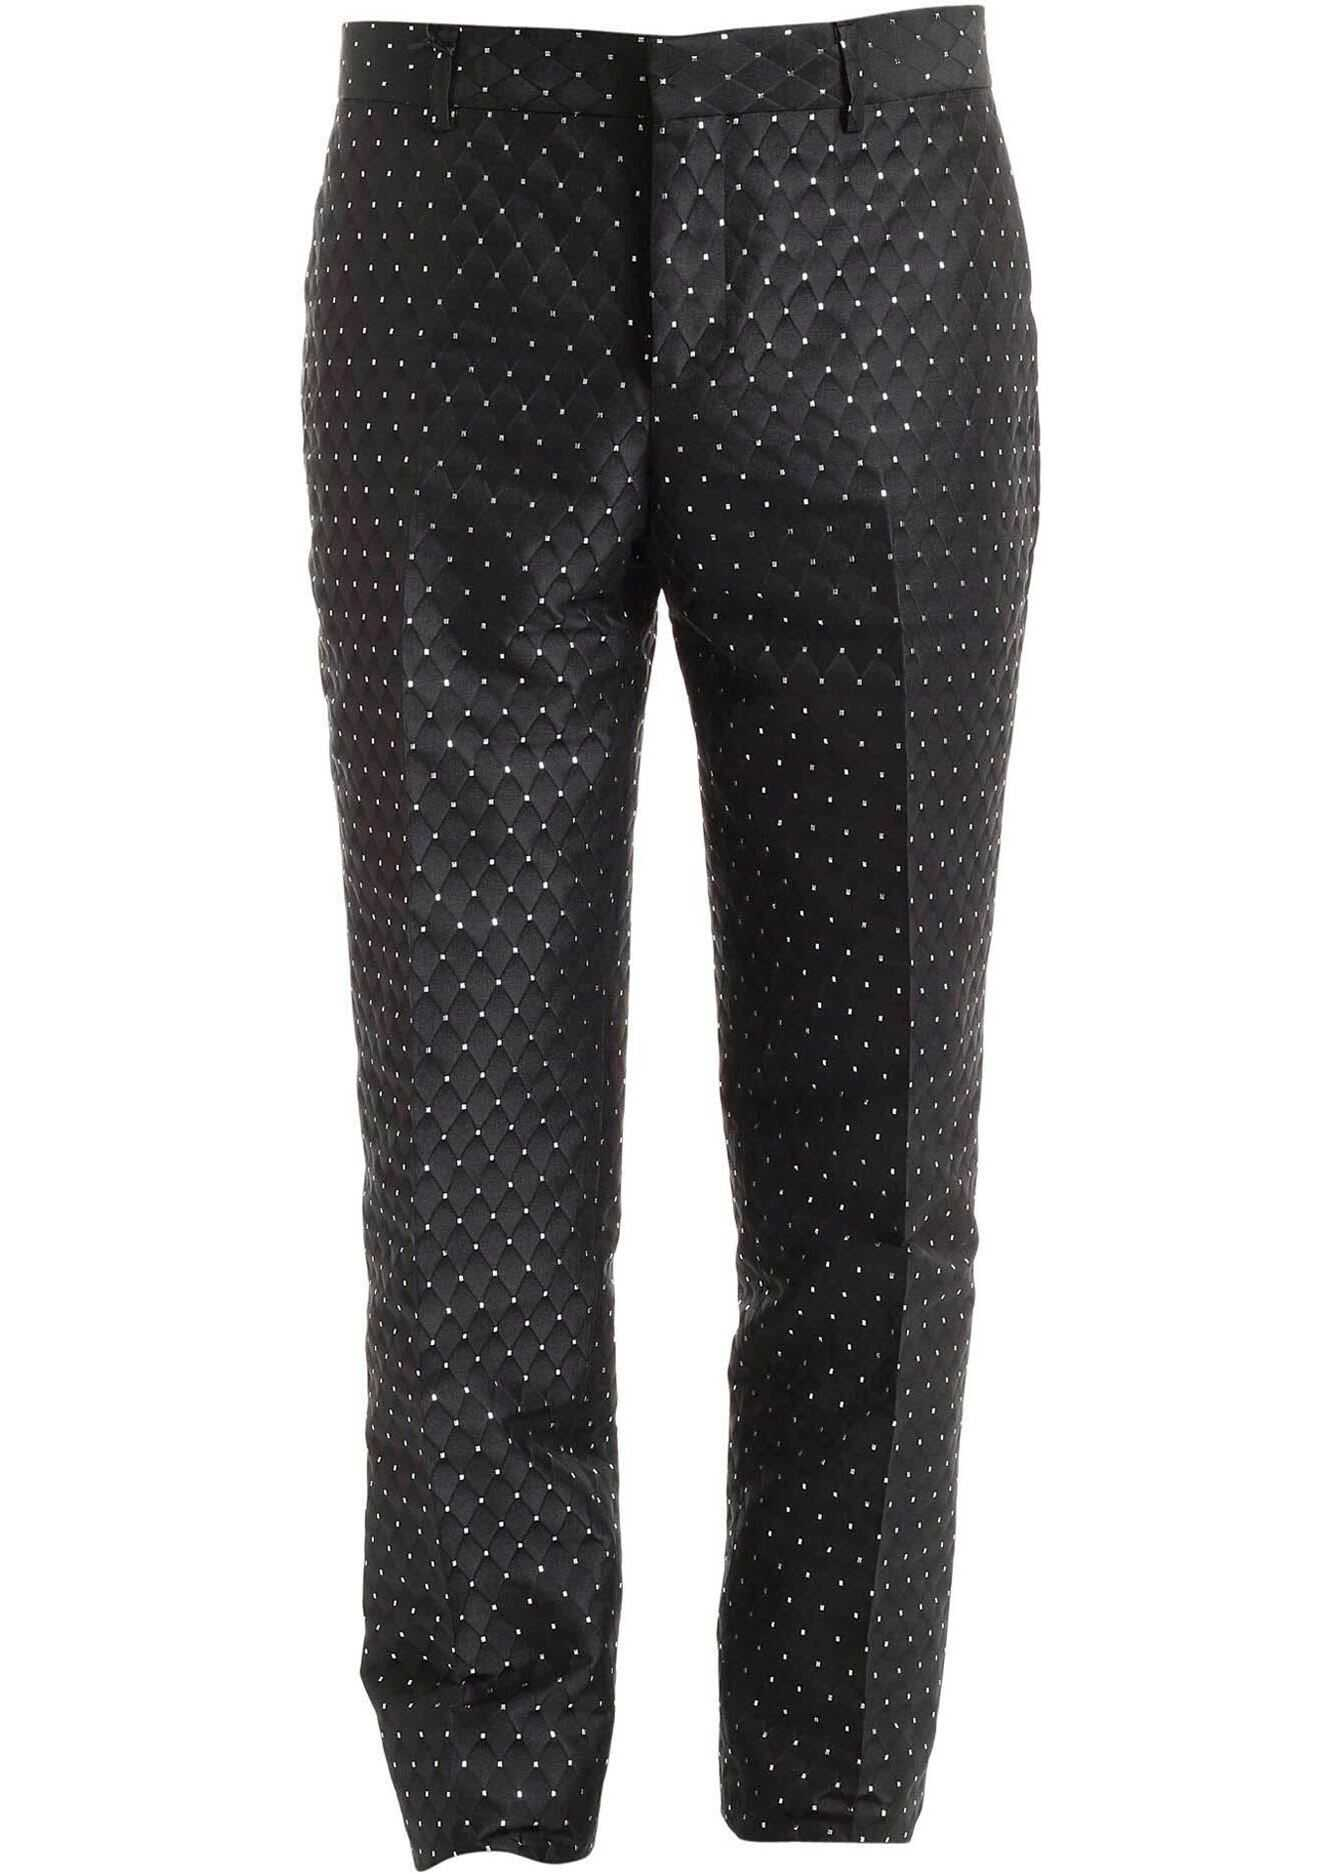 Moschino Black Jacquard Fabric Pants With Silver Details Black imagine